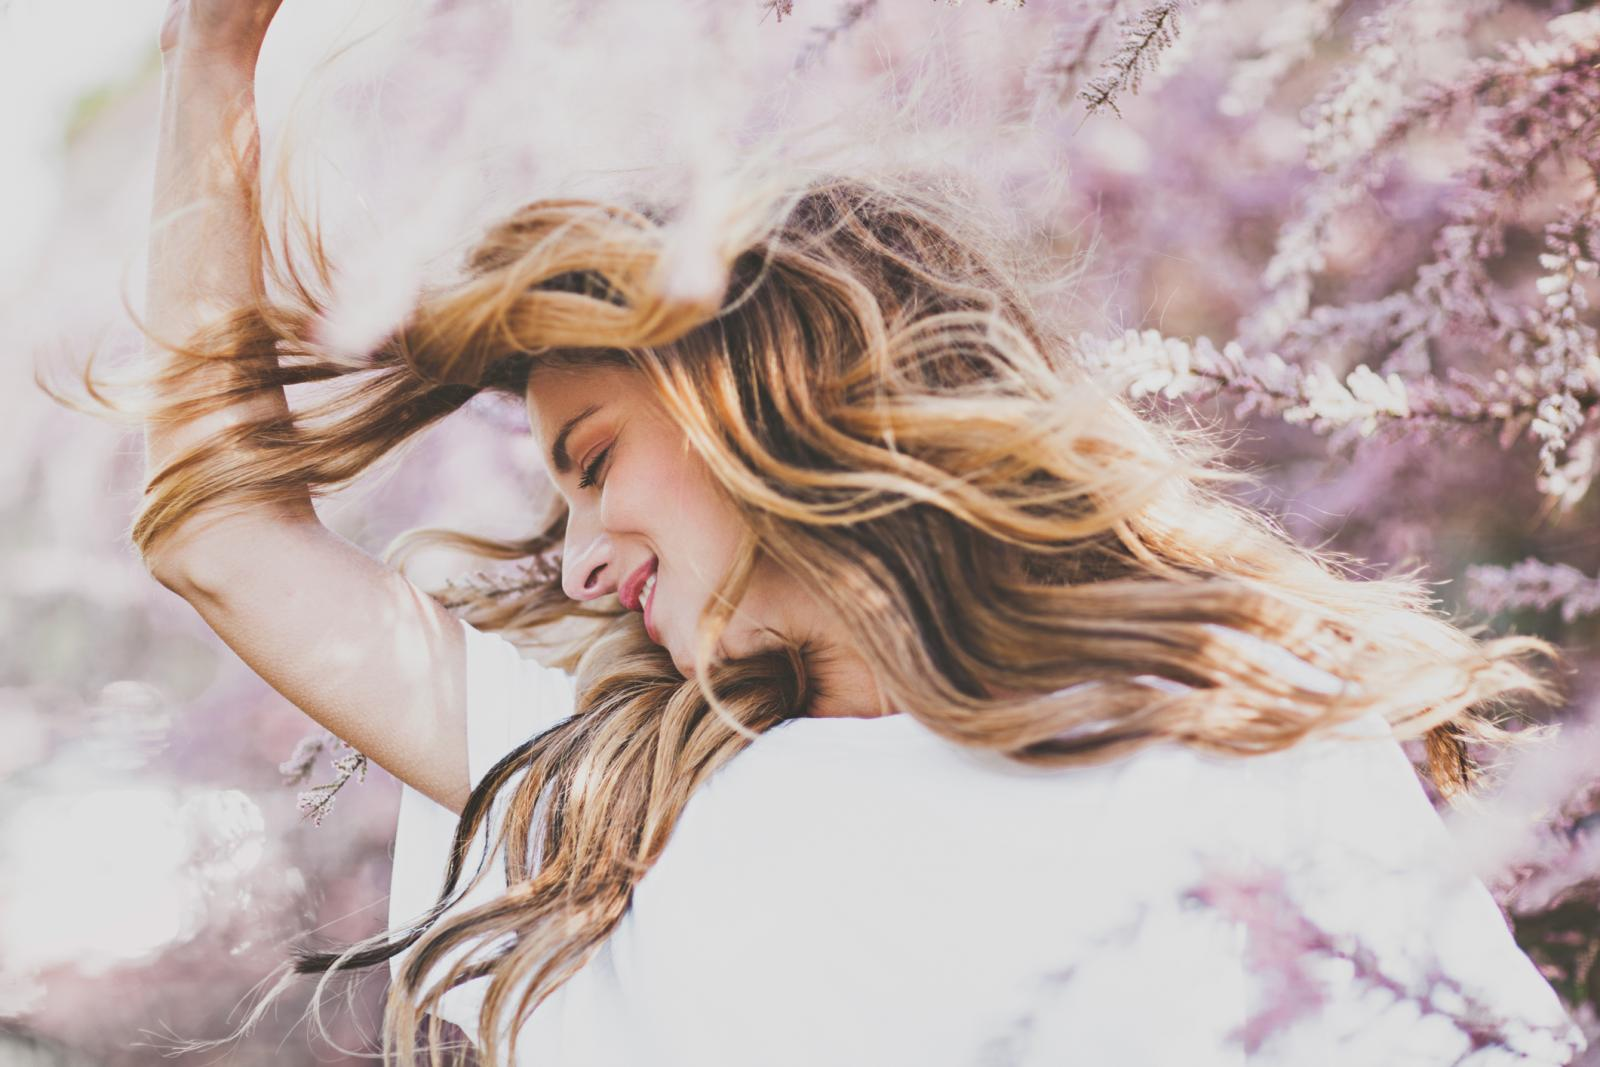 Girl with beautiful hair enjoying springtime